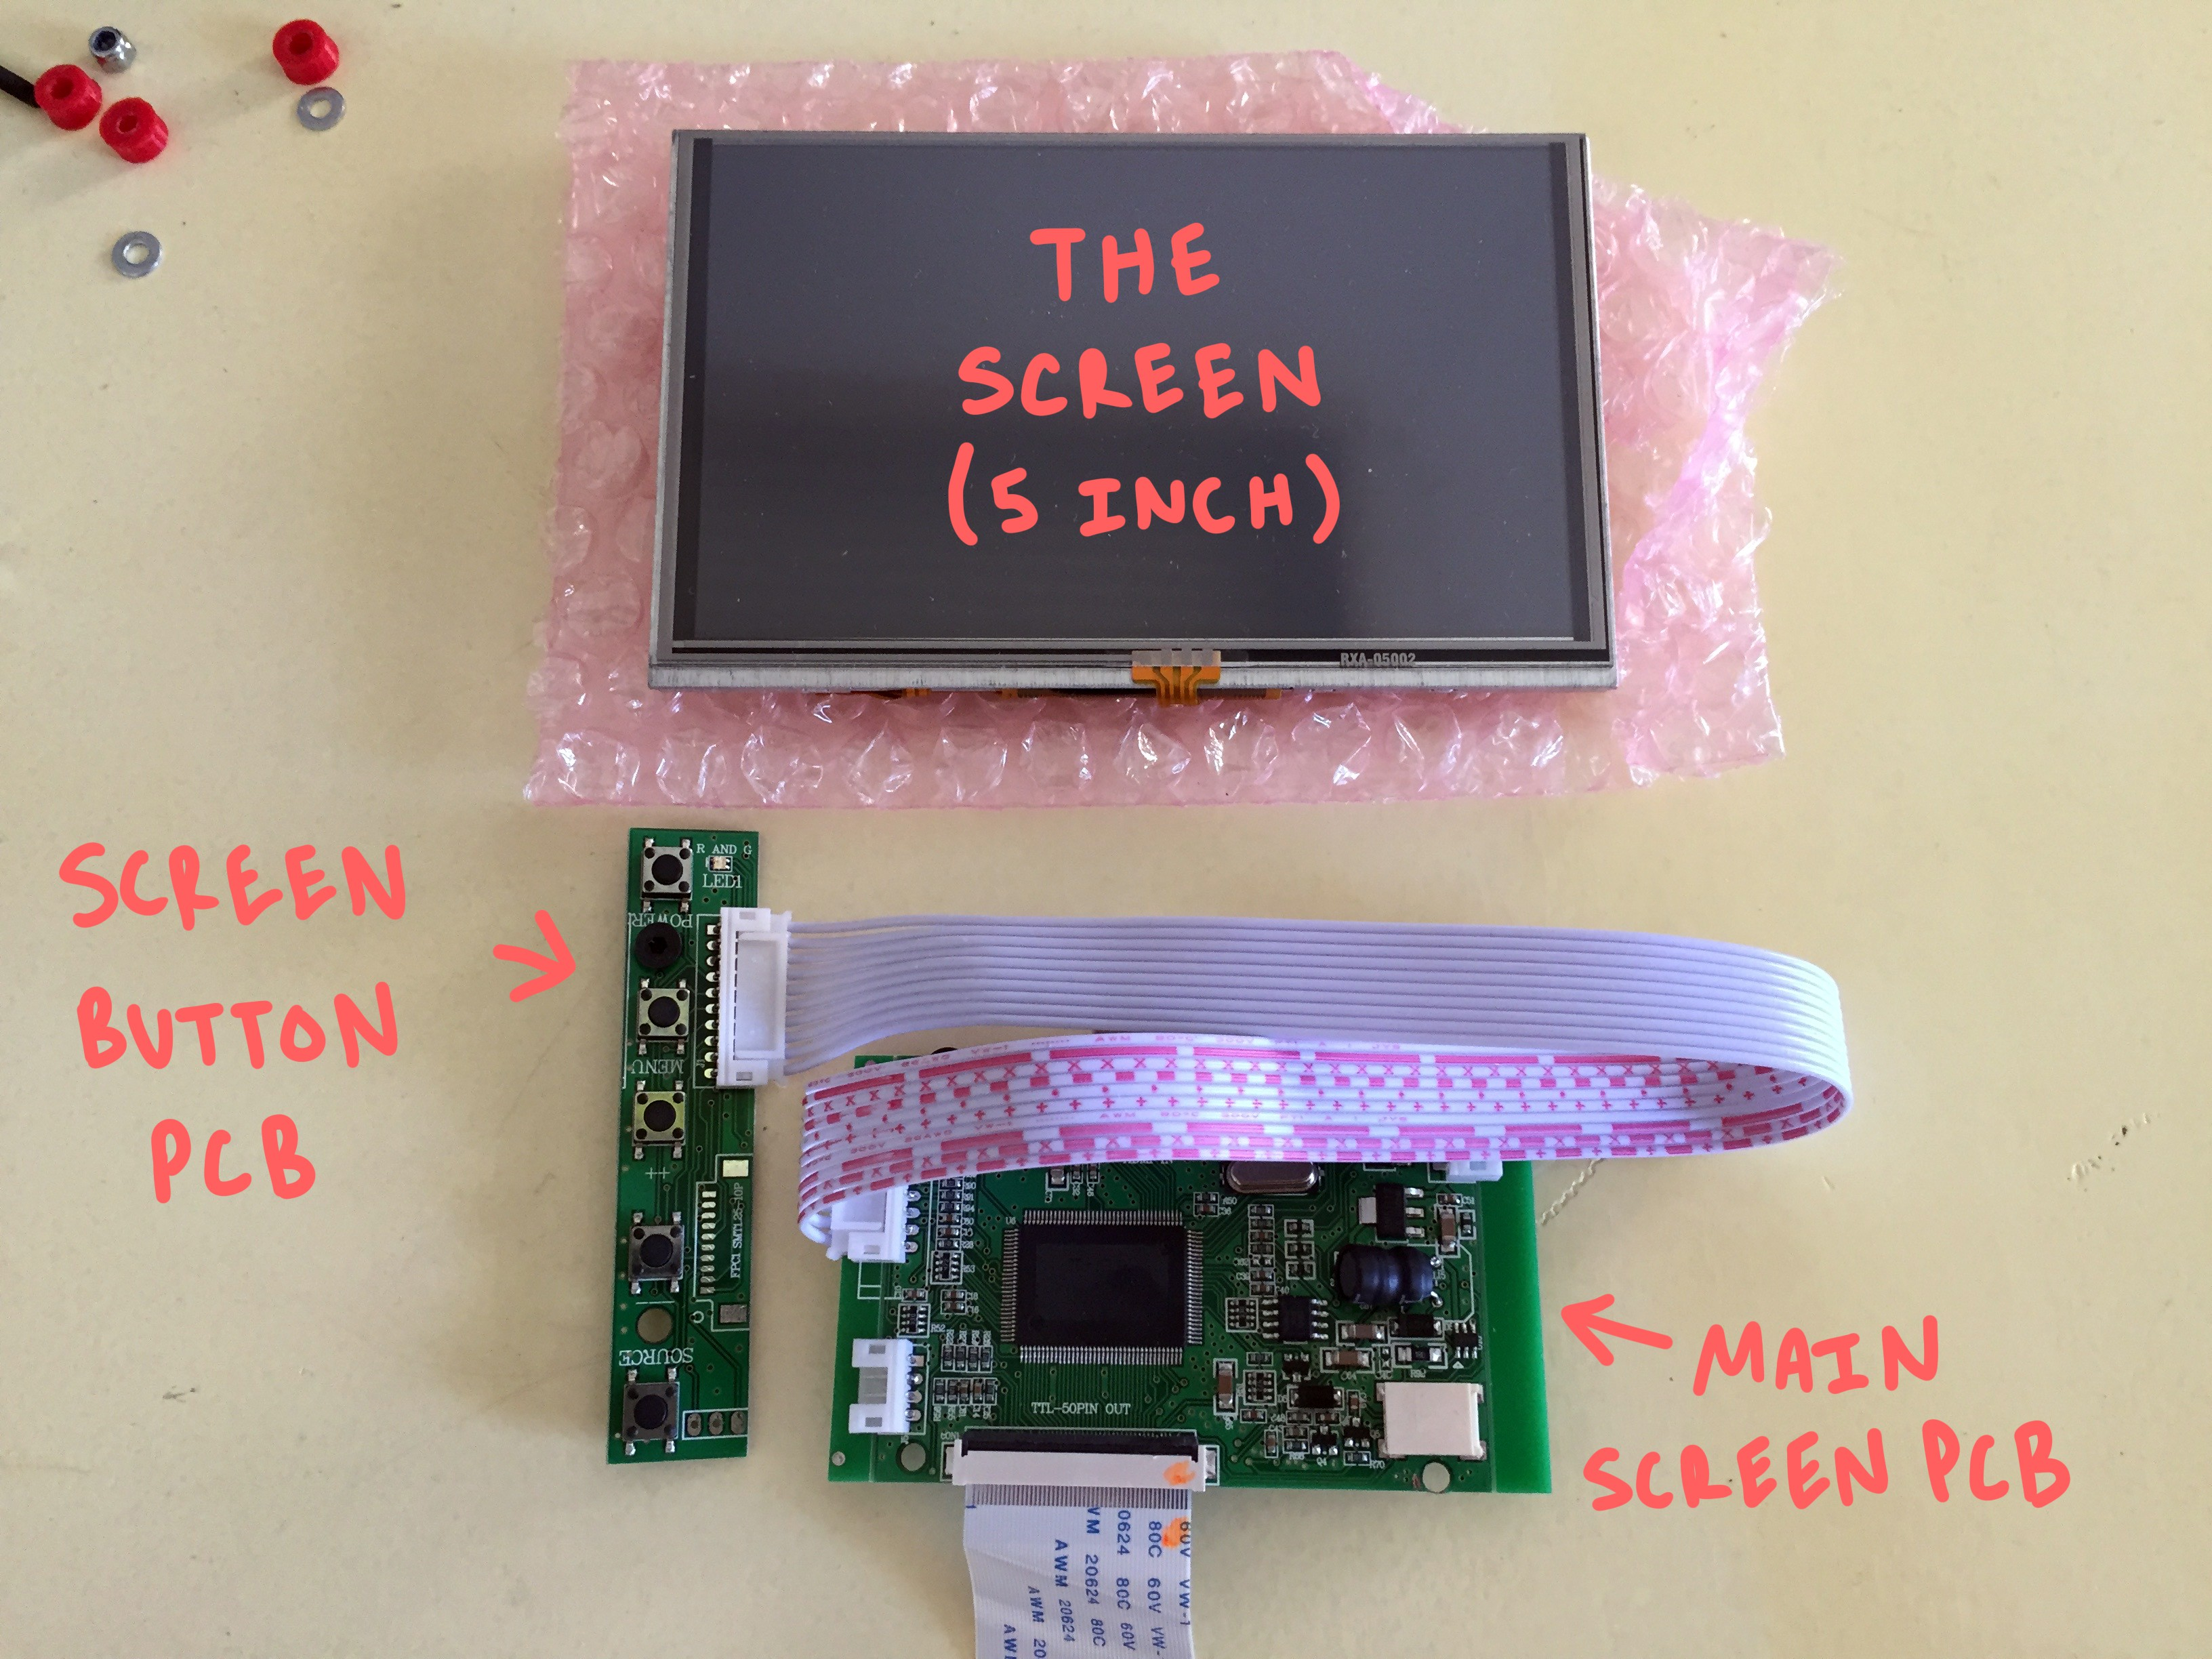 Project She Bon Wiringpi Serial Lcd The Other Helpful Thing To Do As Soon You Unpackaged Your Screen Is Use Some Double Sided Silicone Tape Adhere Thin And Fragile Touch